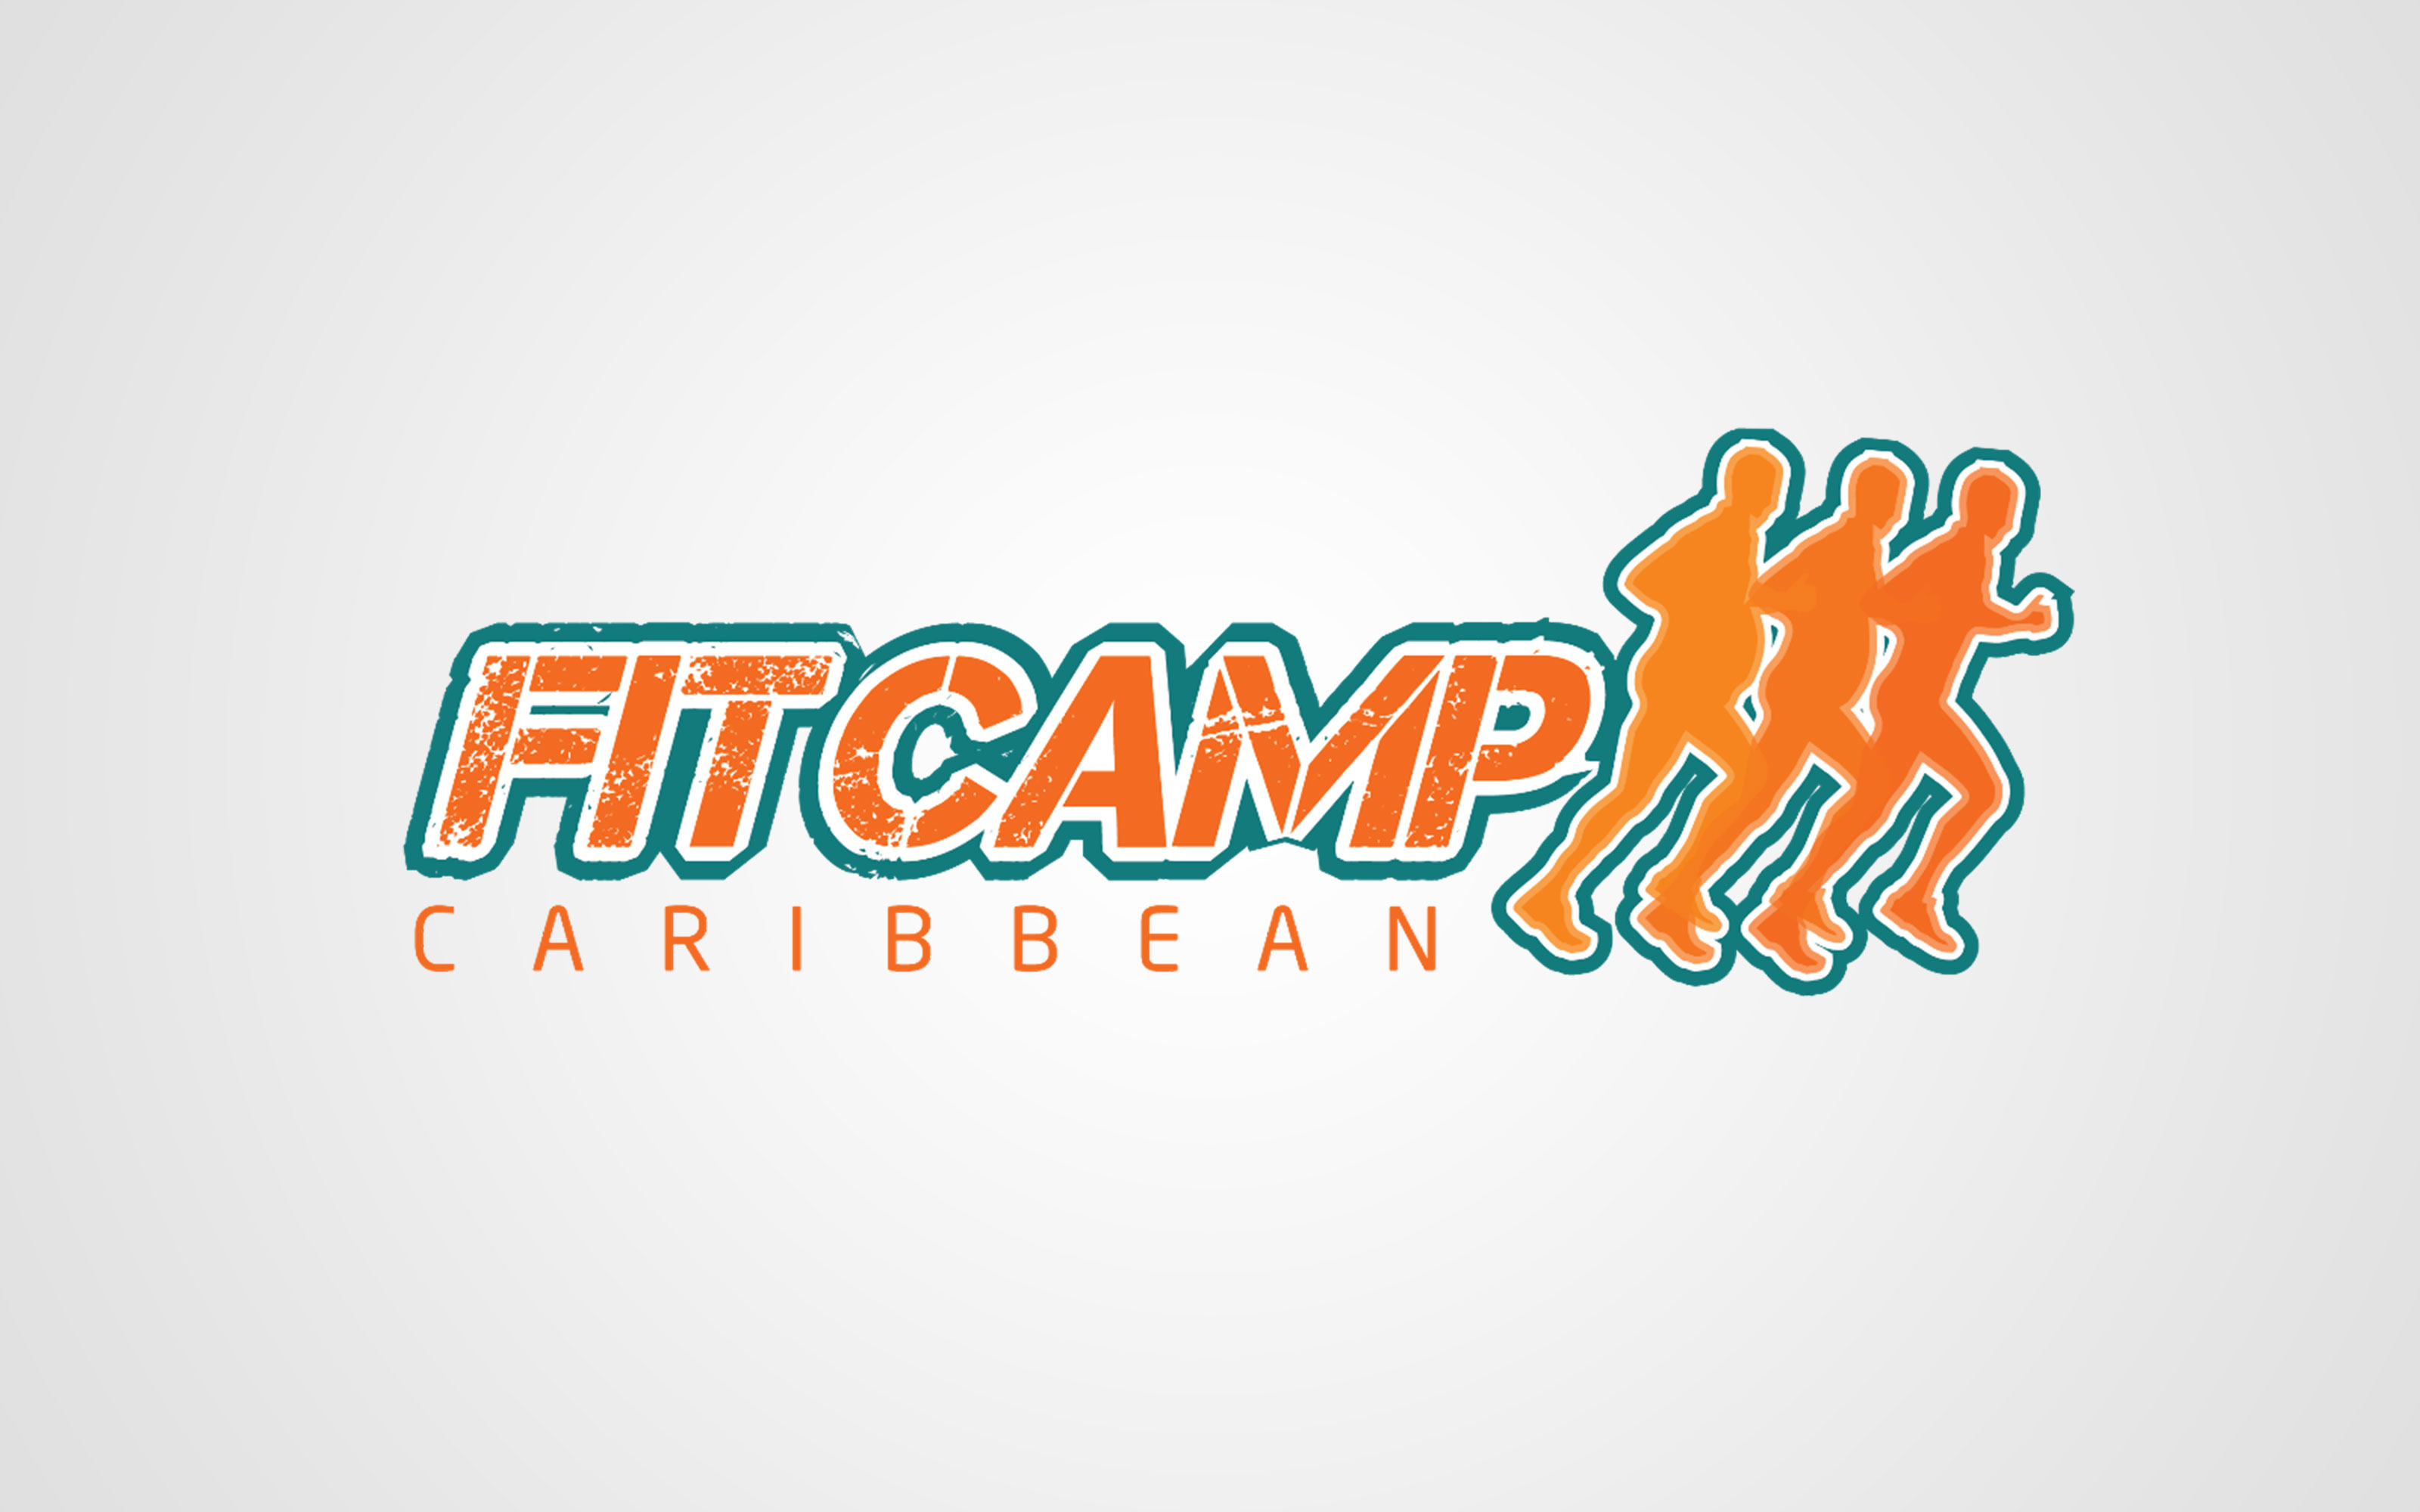 Fit Camp_Caribbean_logo